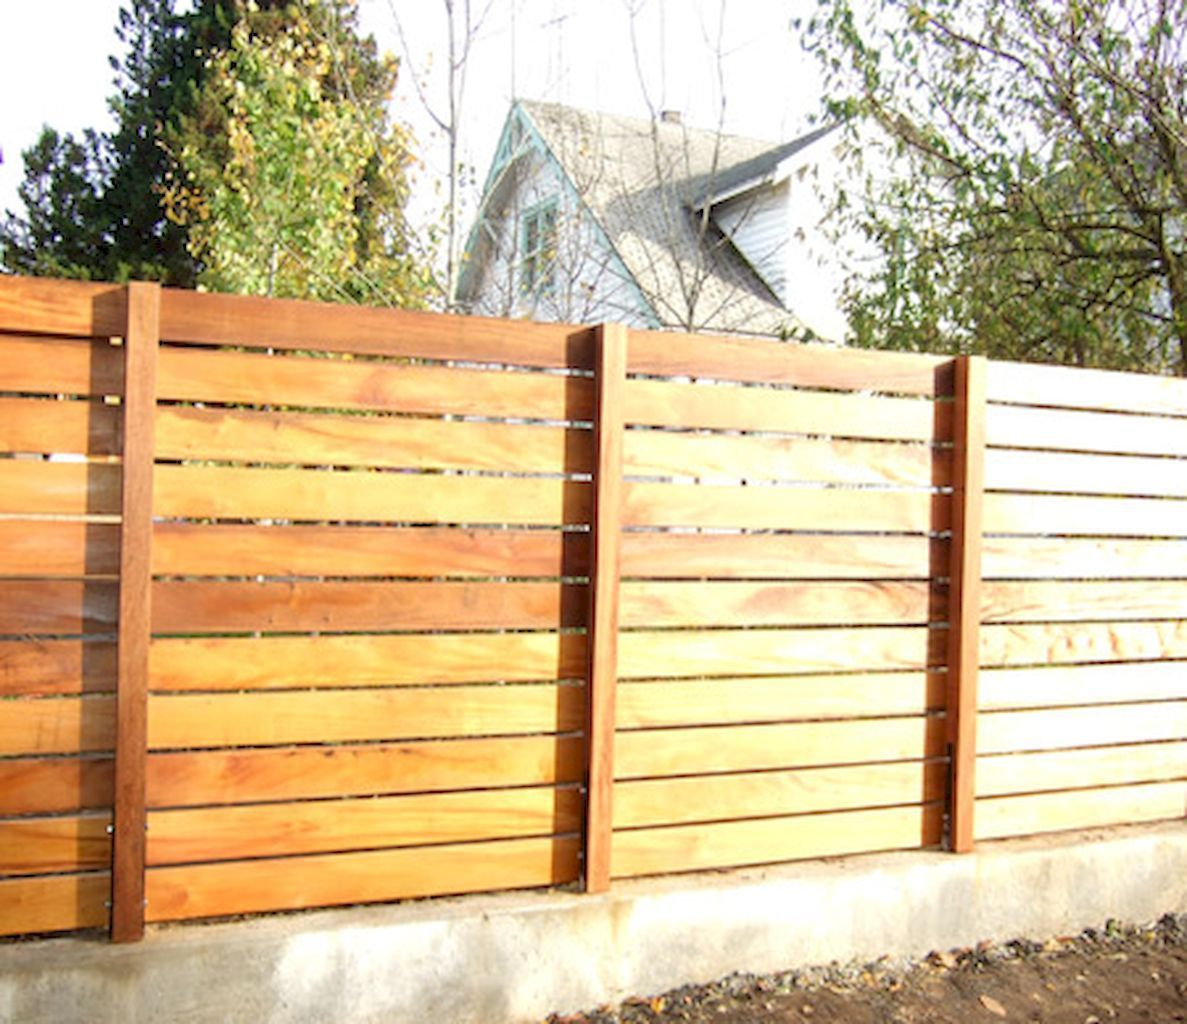 Affordable backyard privacy fence design ideas (35 | Privacy fence ...